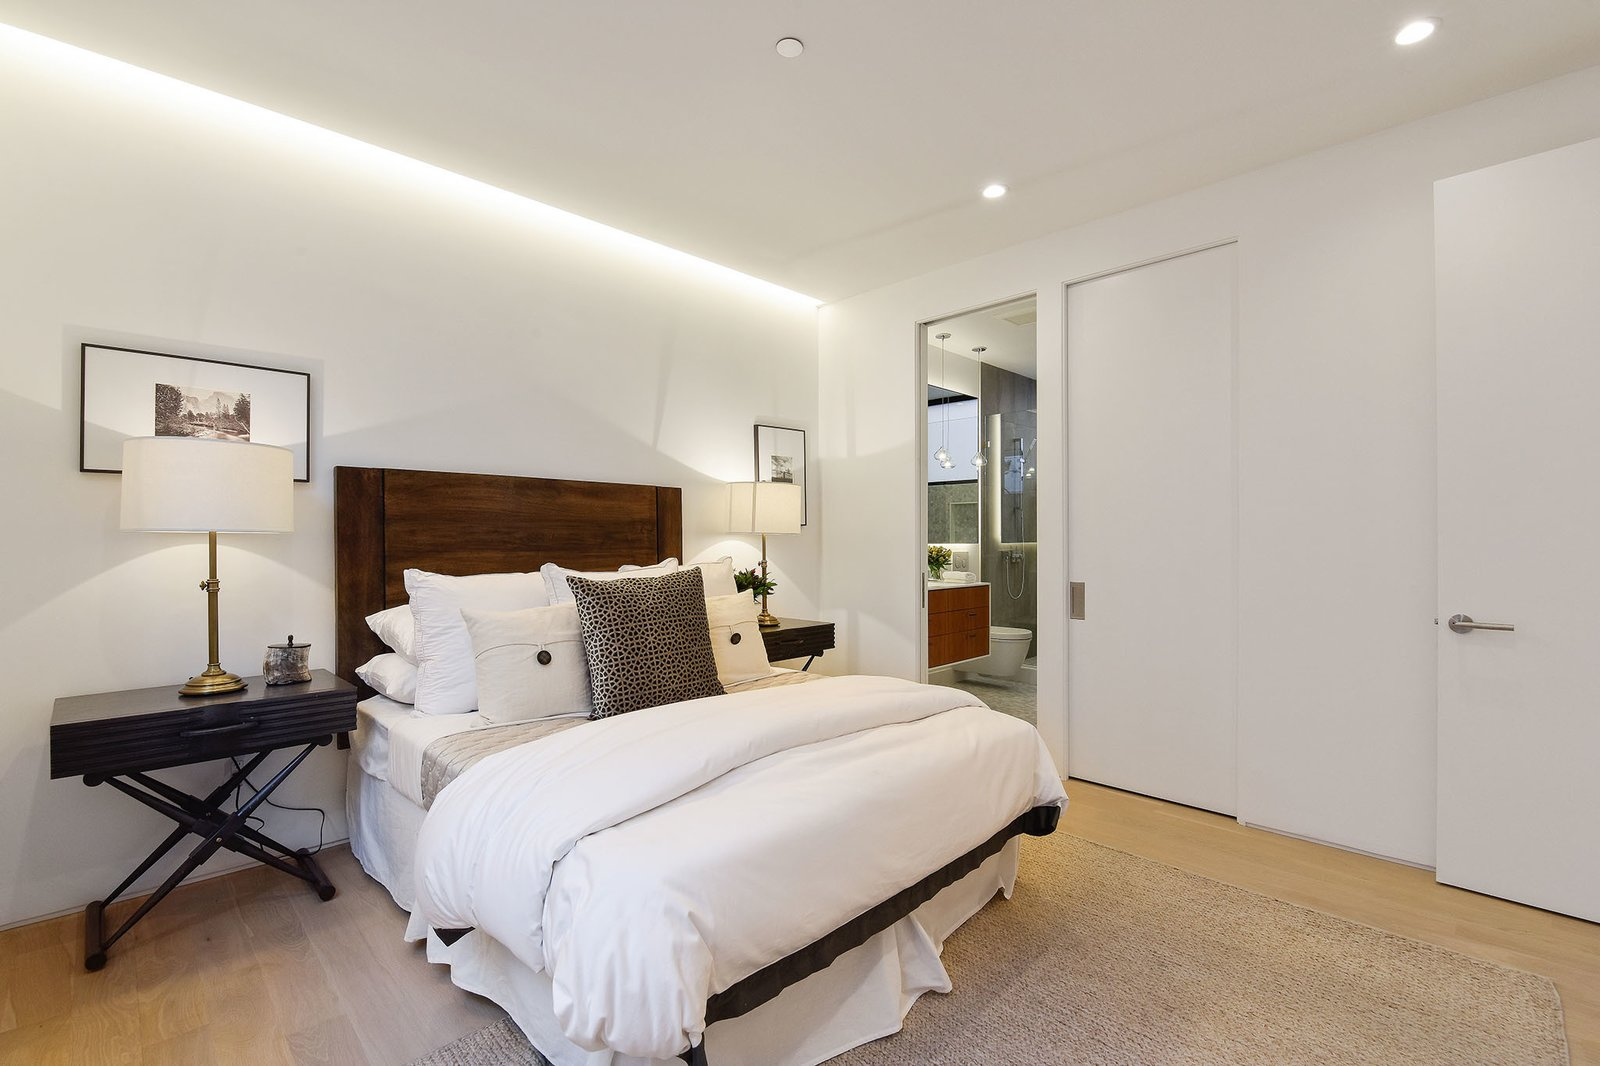 Bedroom and Recessed Lighting  For Sale: 188 Quane Street